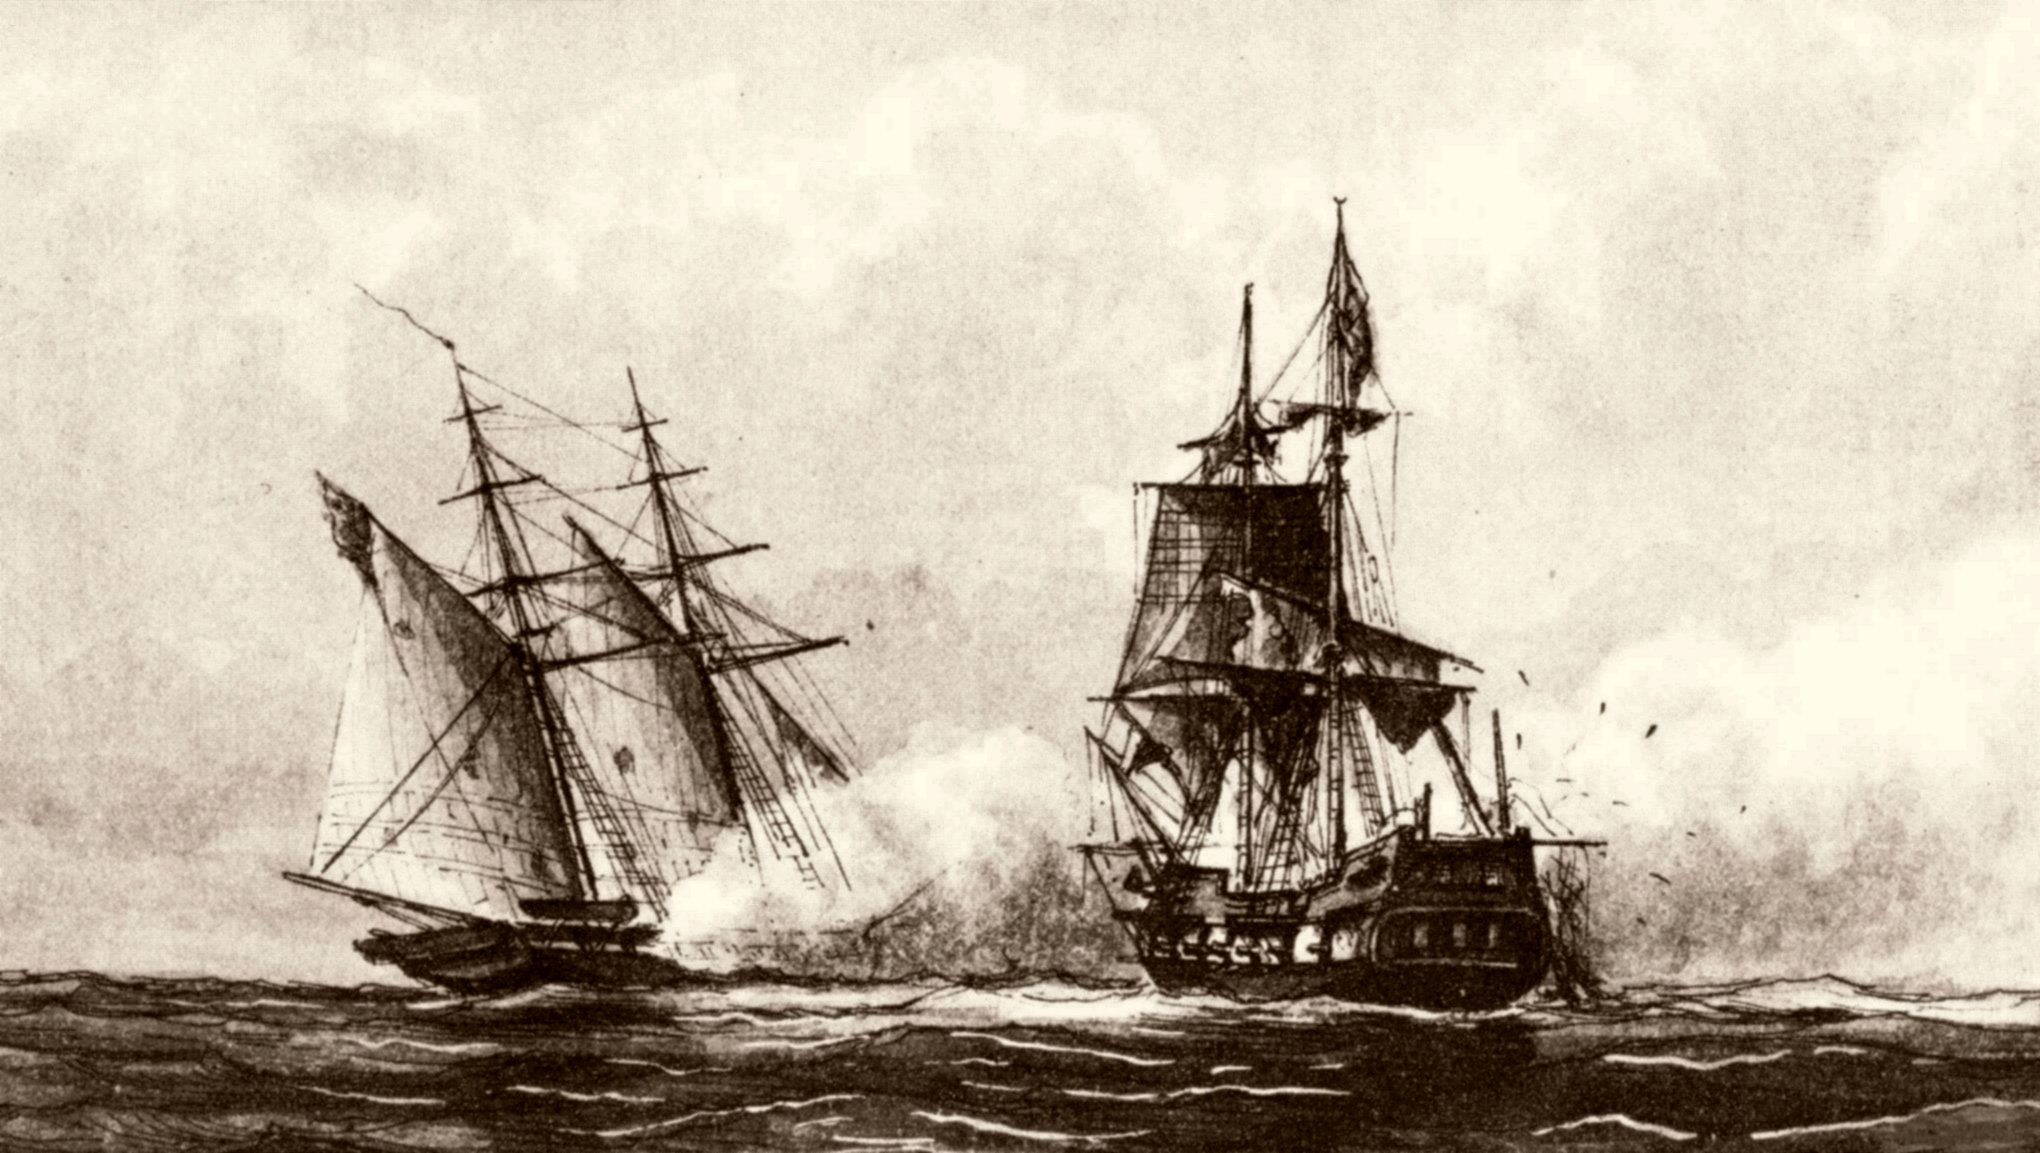 U.S.S. Enterprise capturing the Tripolitan corsair Tripoli off Malta 1 August 1801. From a drawing (c. 1878) by Capt. William Bainbridge Hoff, U.S. Navy. Photo from the U.S. National Archives.